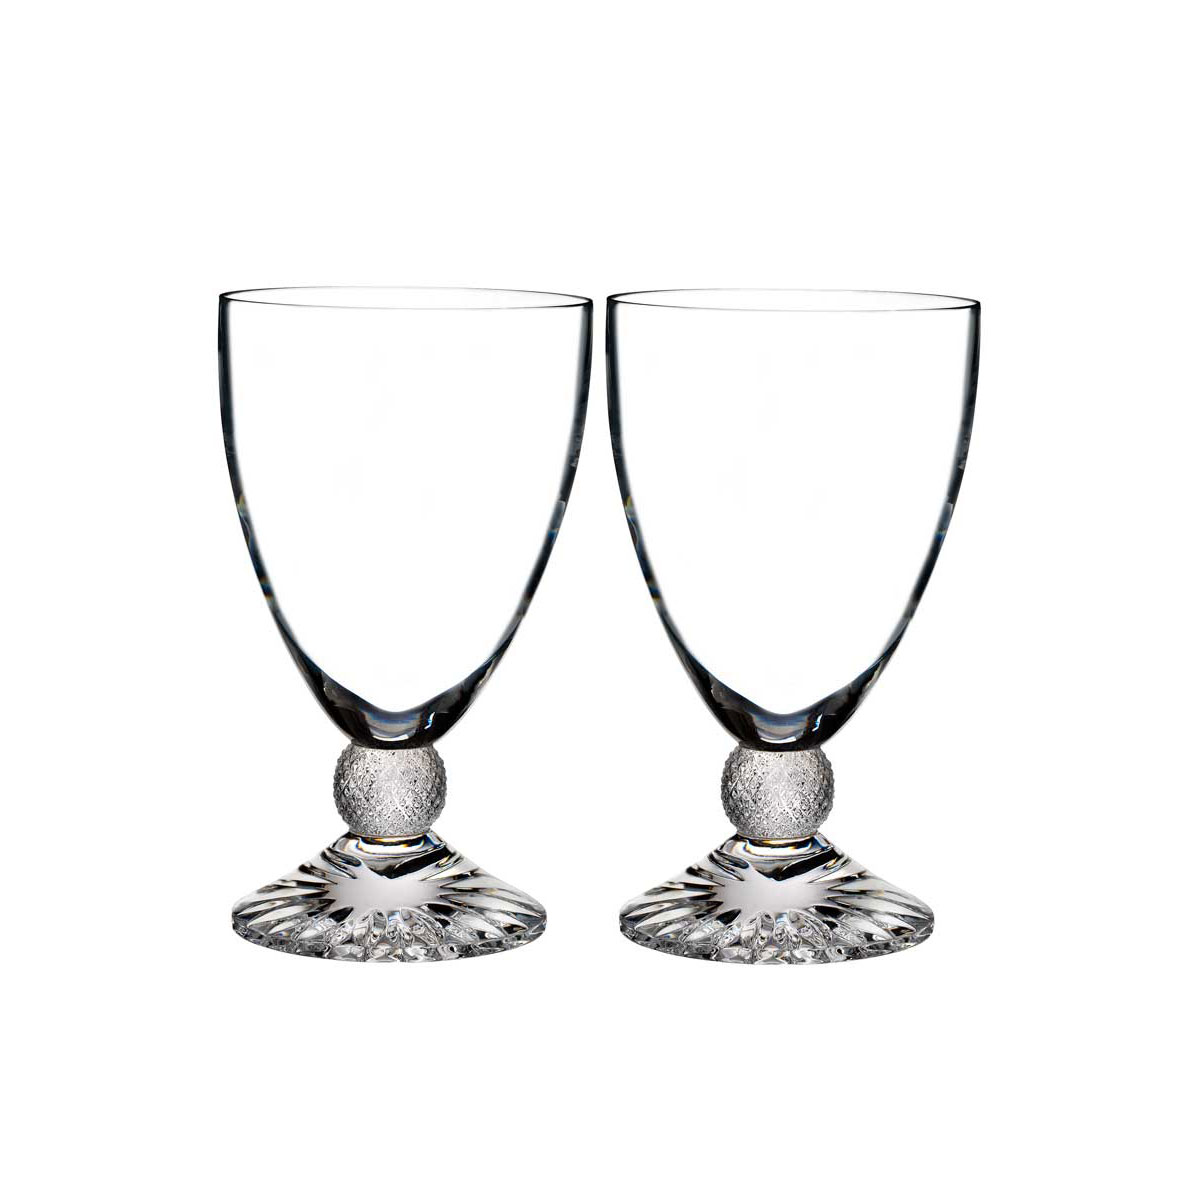 Waterford Crystal, Town and Country Riverside Drive Crystal Wine, Pair